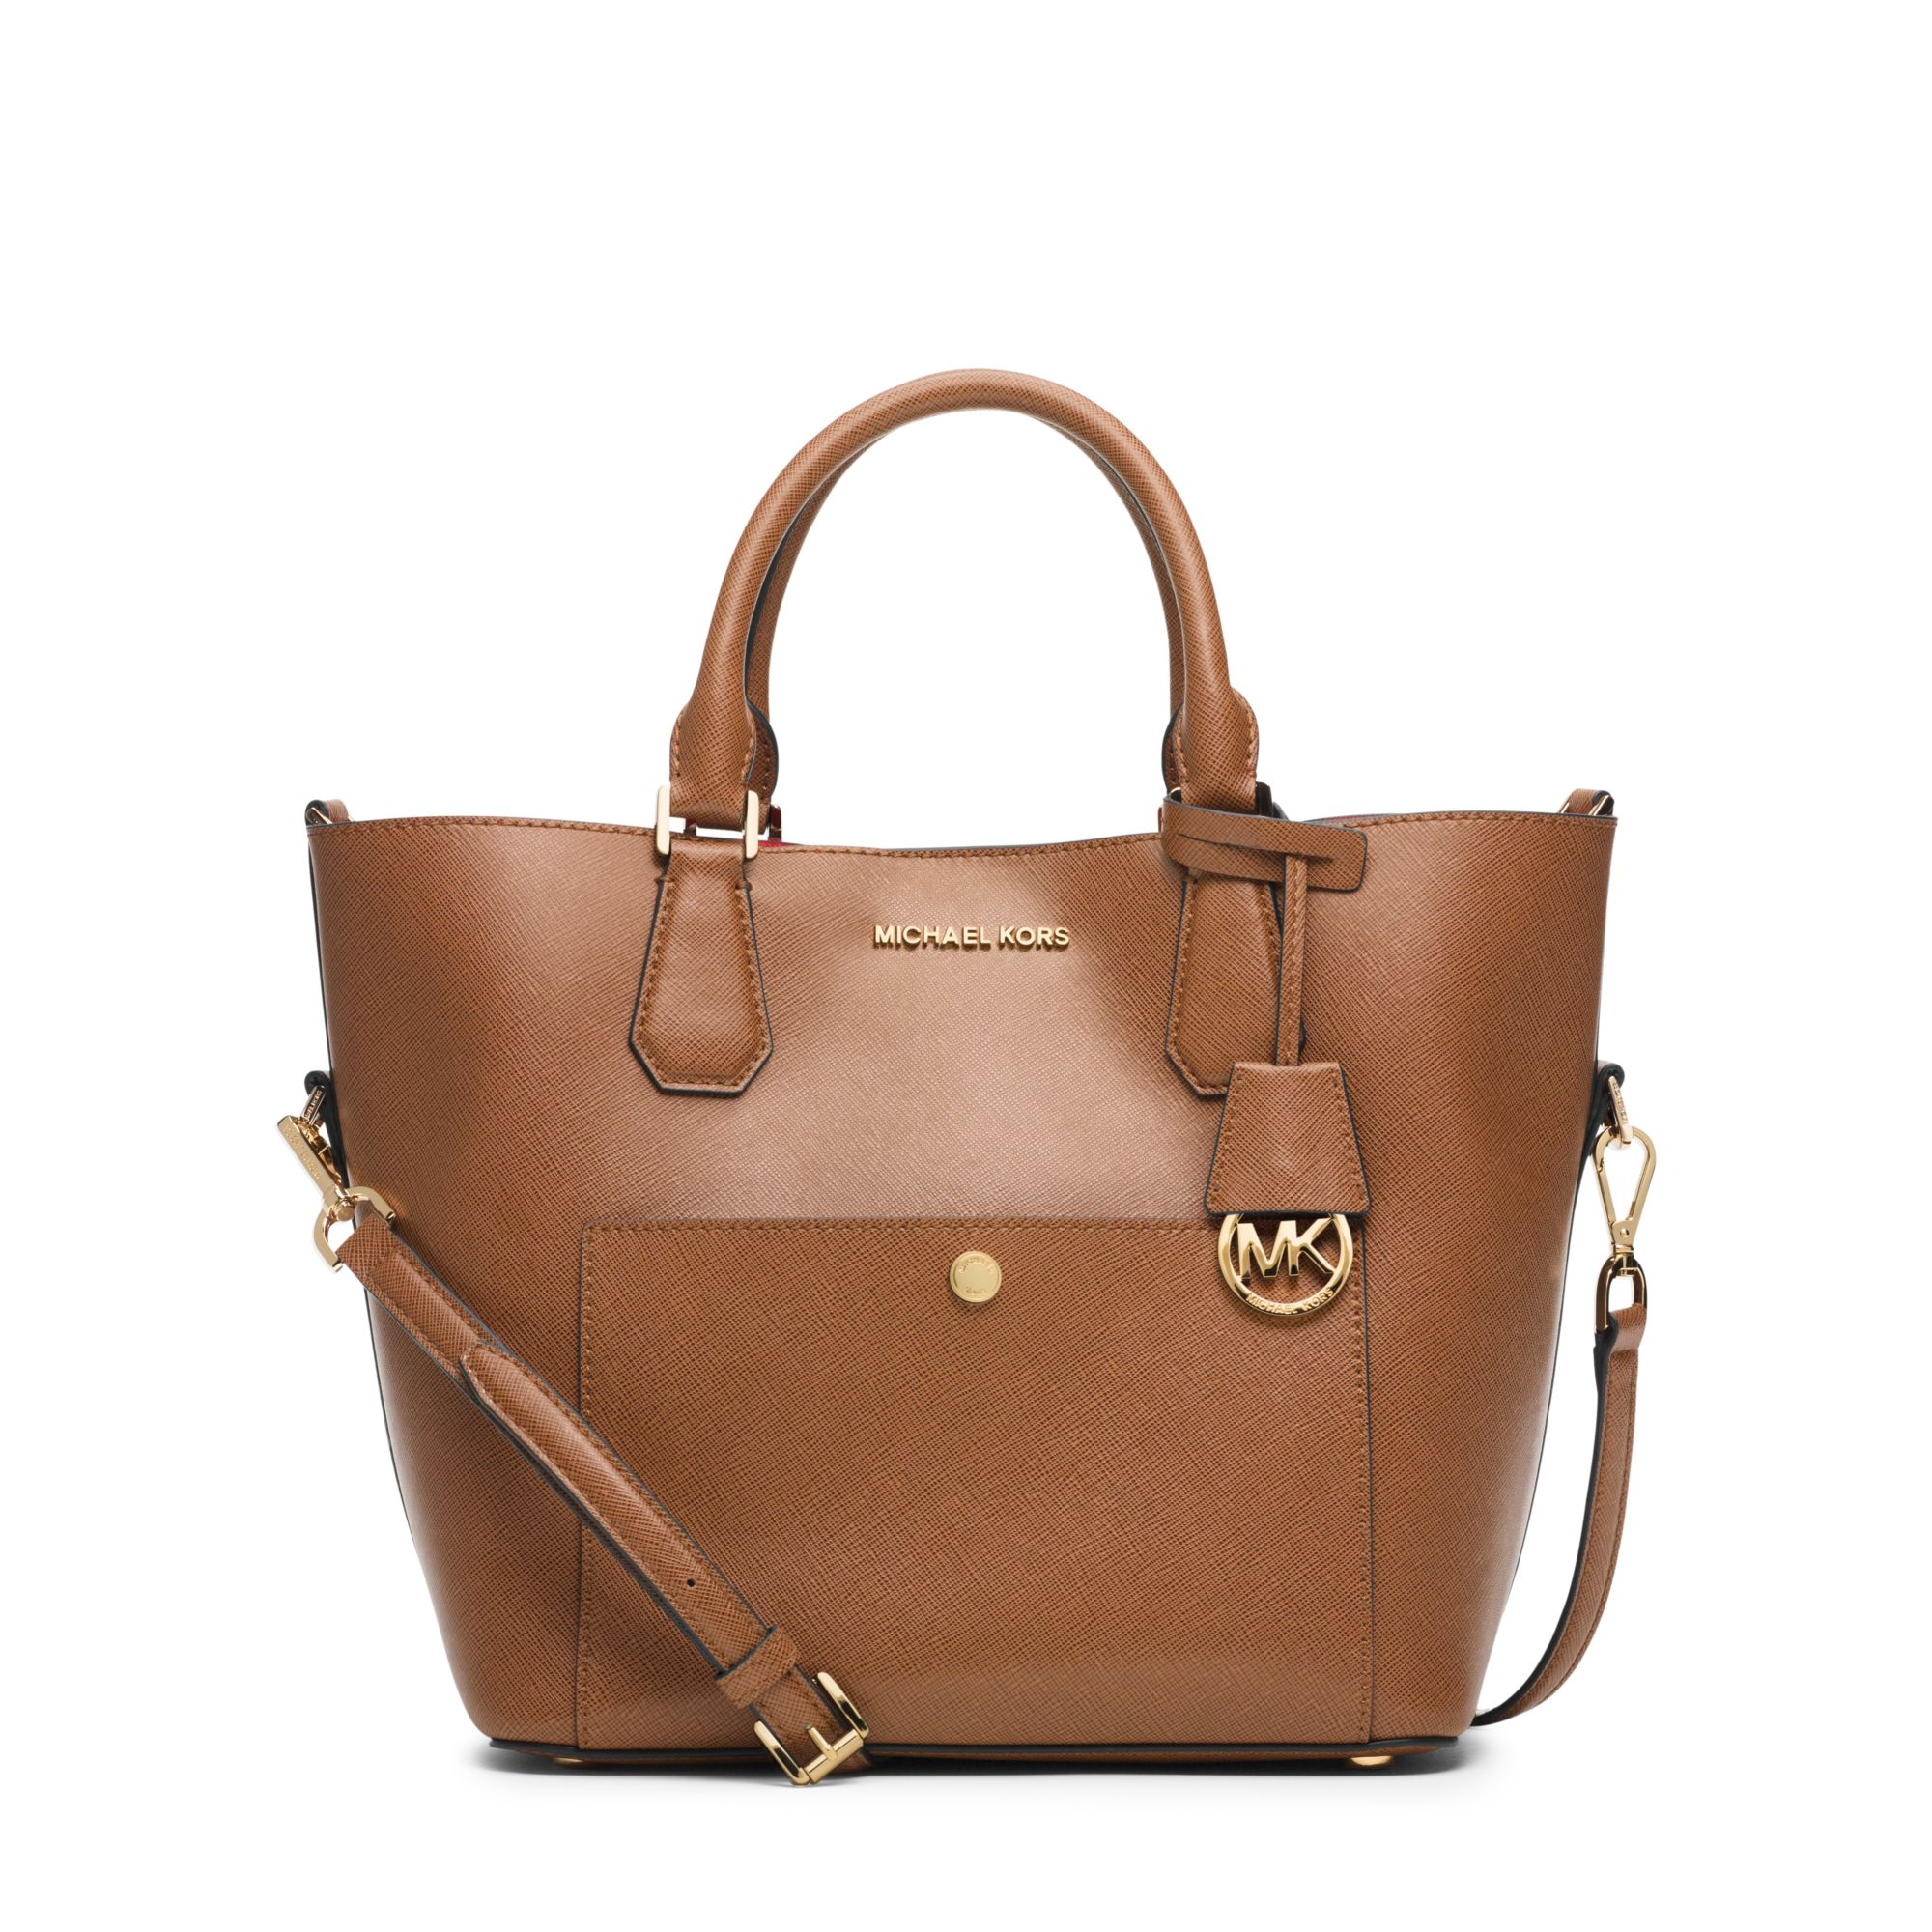 lyst michael kors greenwich large saffiano leather